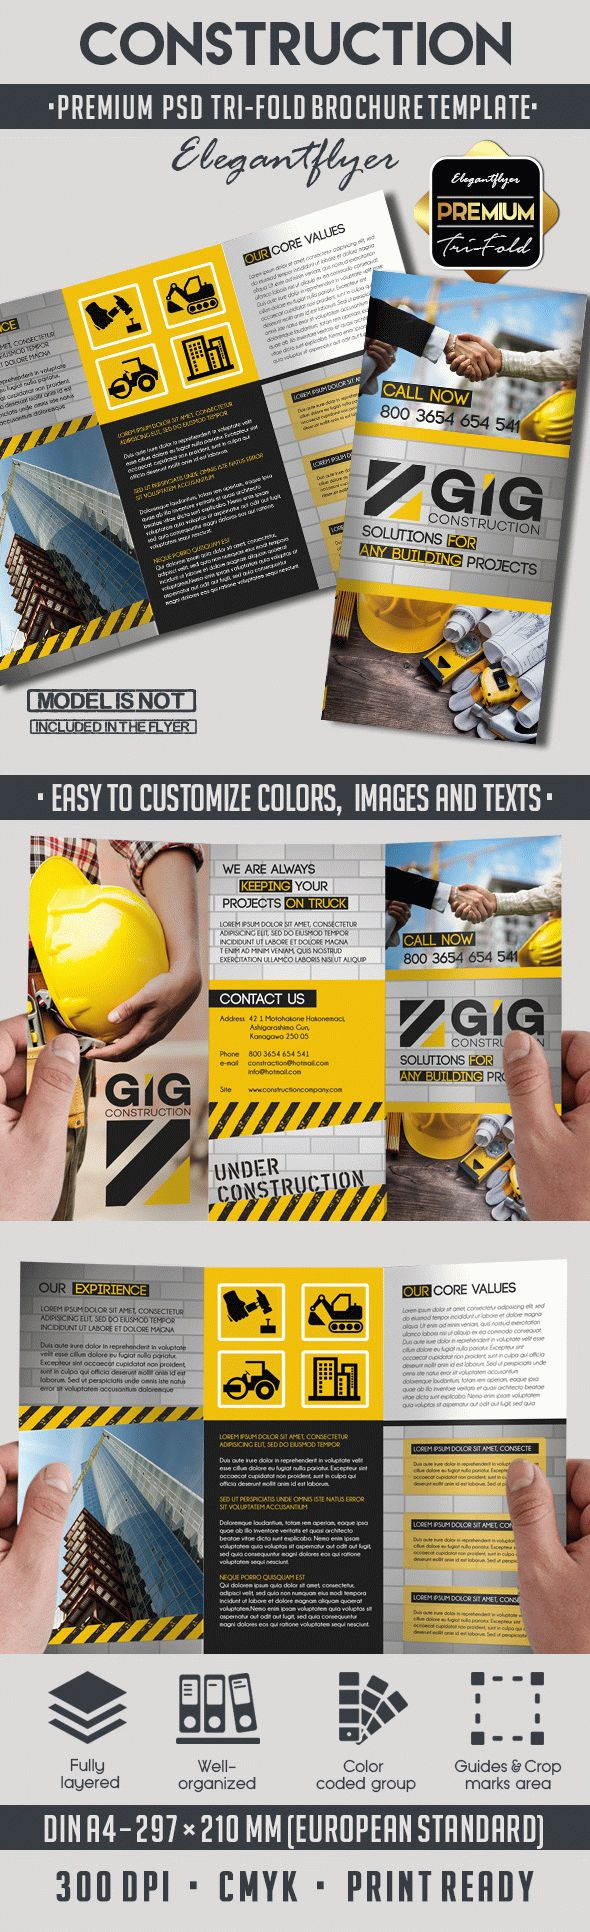 Construction – Premium Tri-Fold PSD Brochure Template